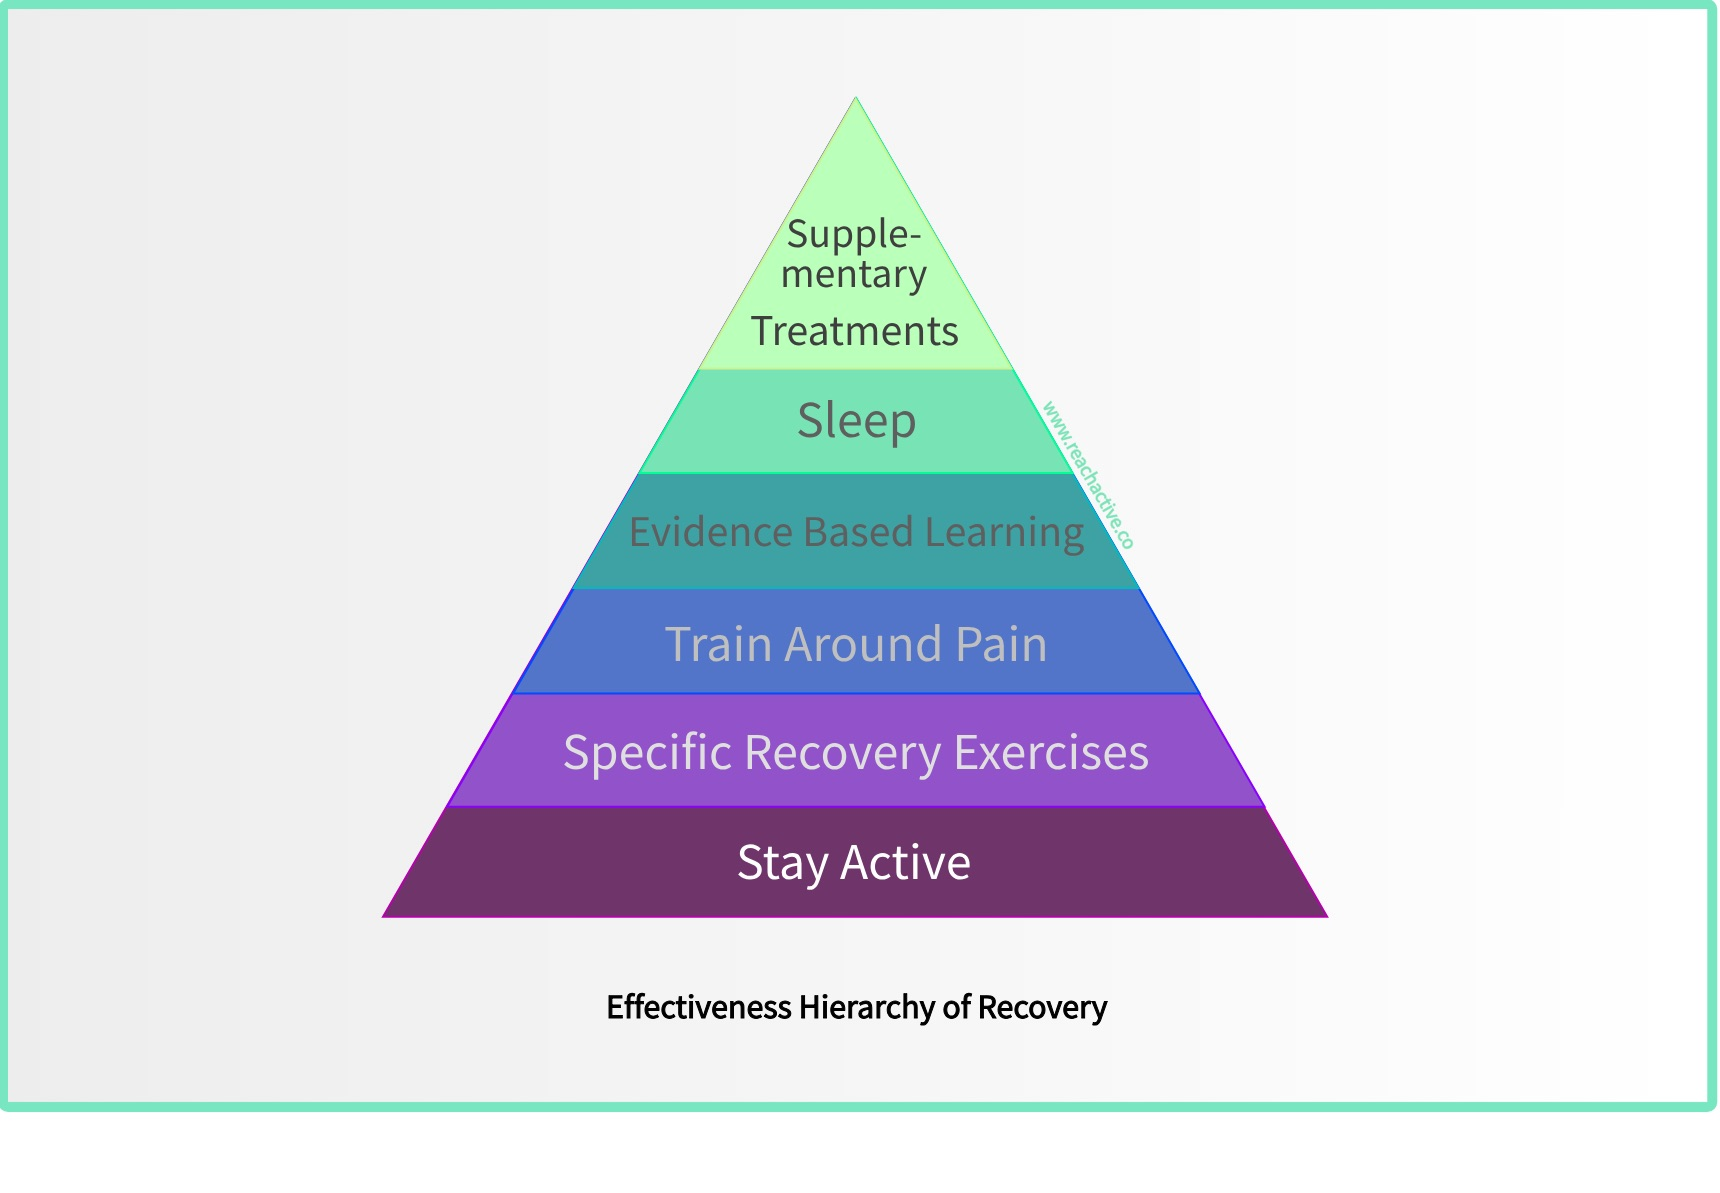 Maslow's hierarchy triangle rewritten for effectiveness of recover